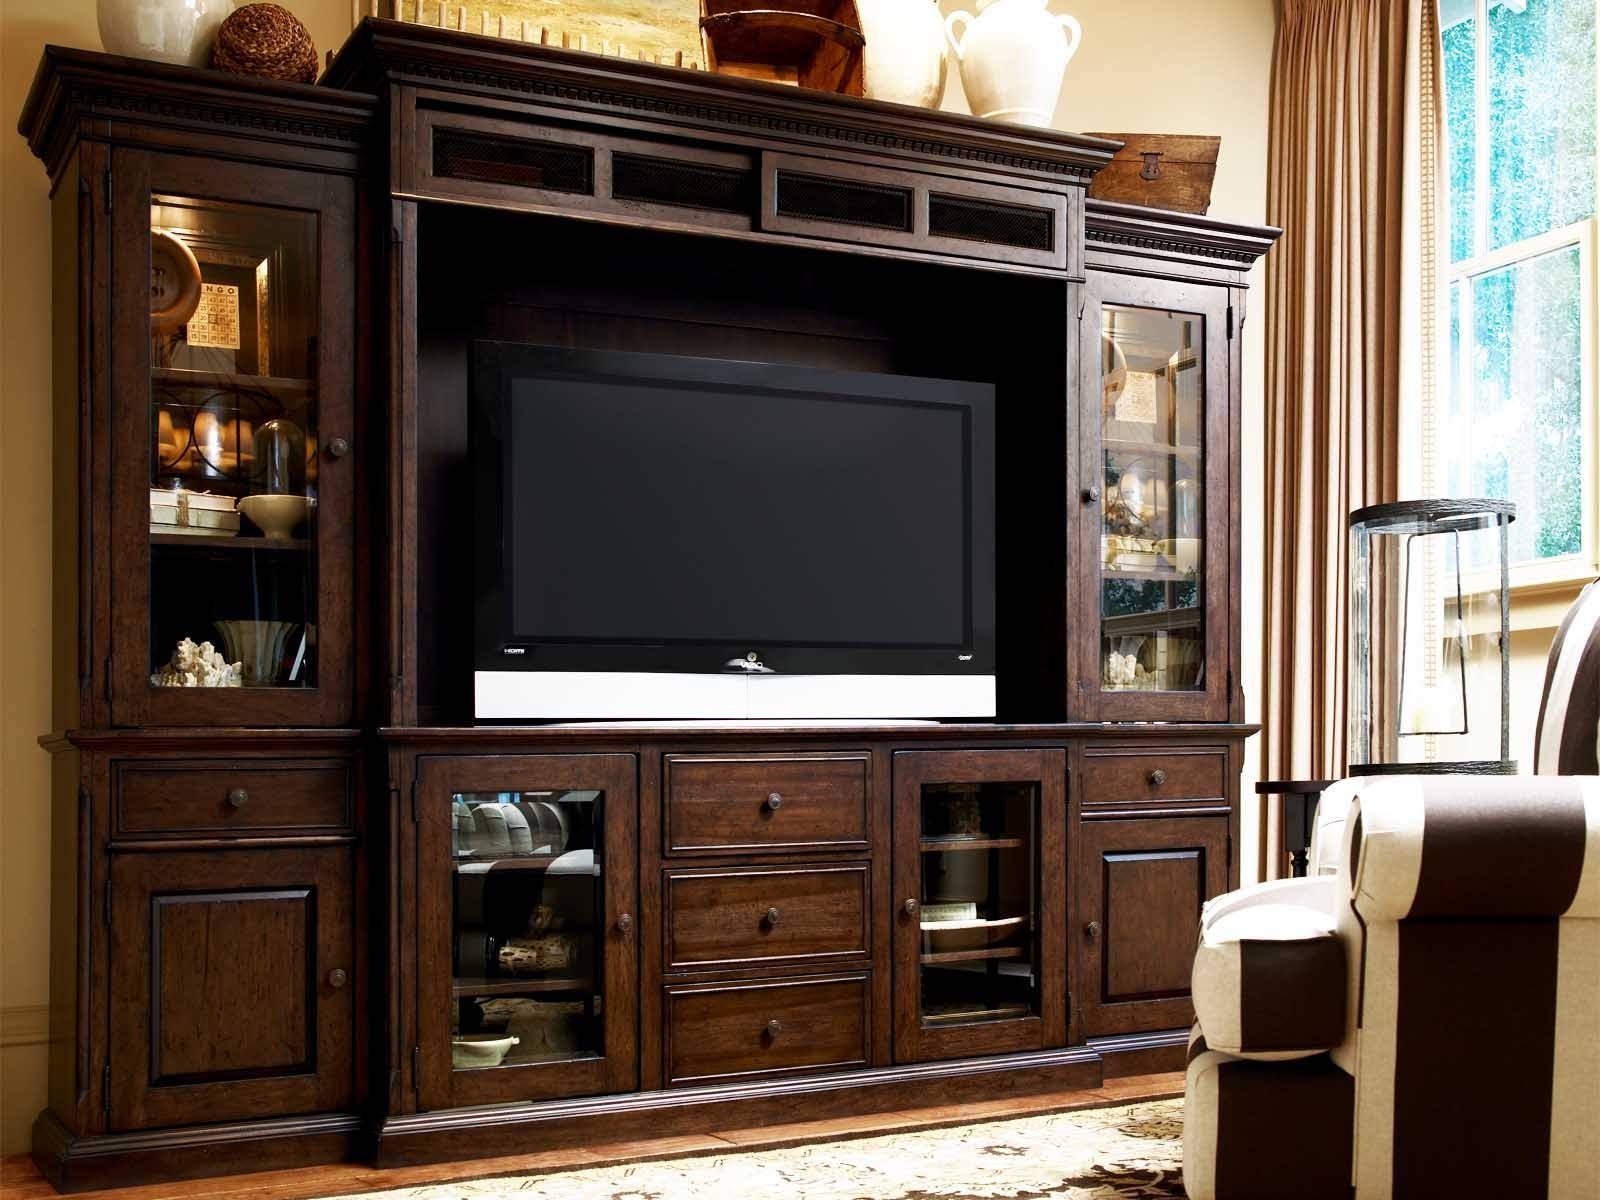 Large Brown Lacquered Mahogany Wood Media Cabinet With Lighted regarding Wooden Tv Cabinets With Glass Doors (Image 8 of 15)